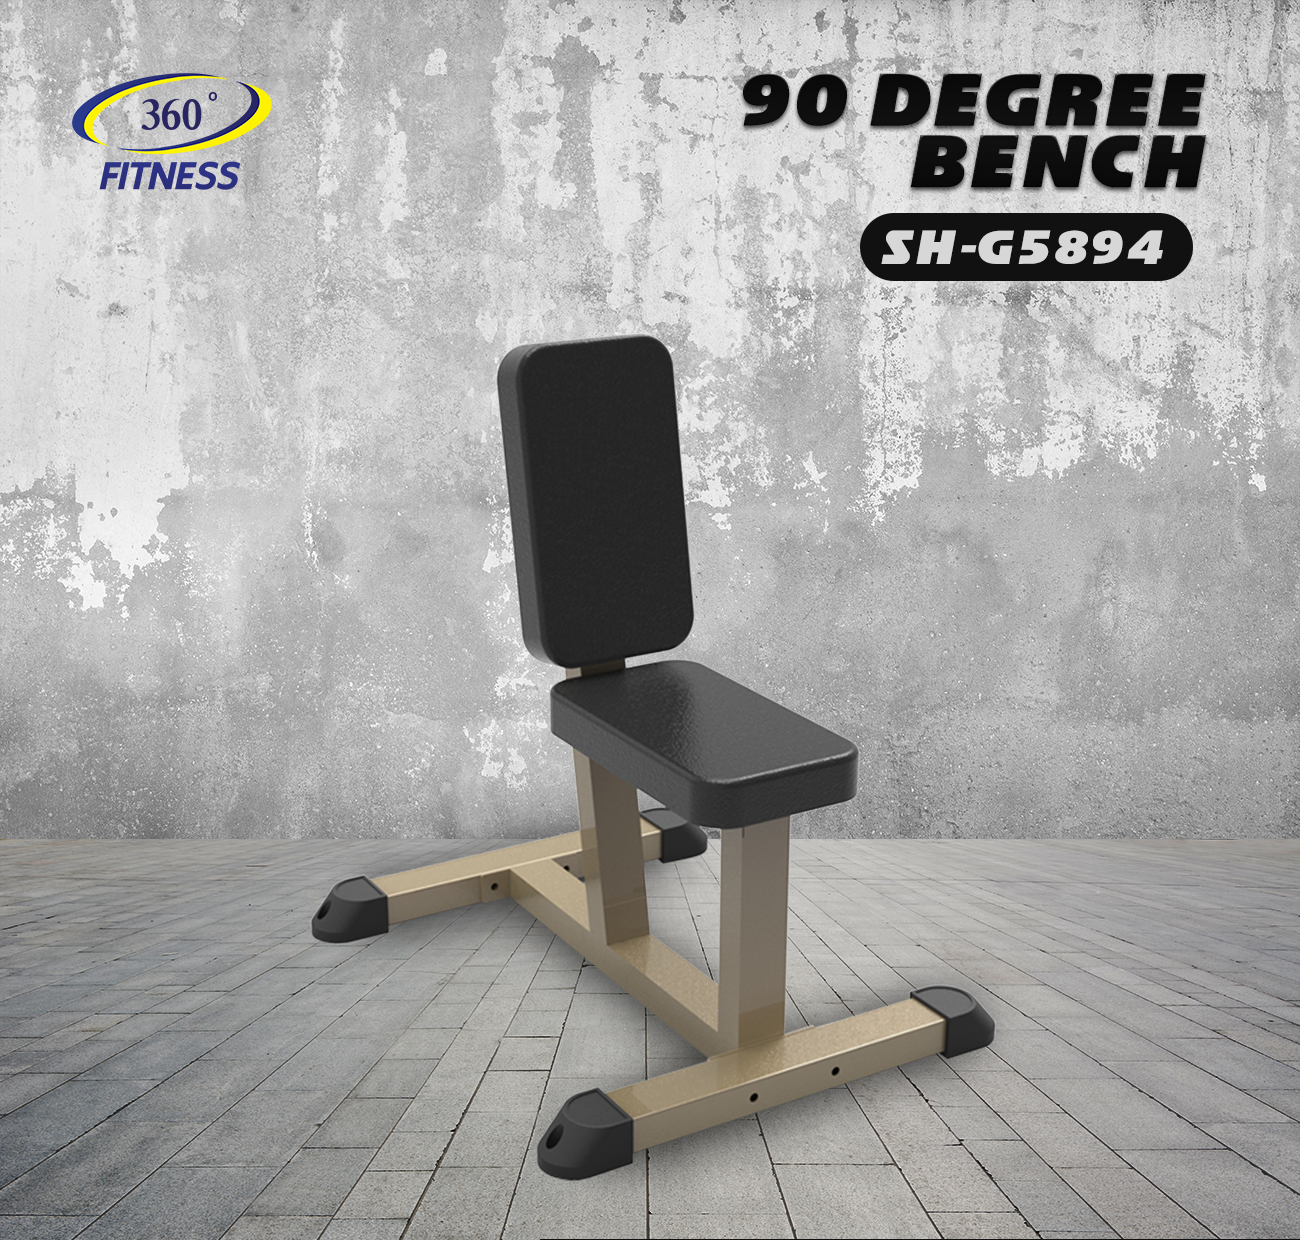 90-Degree Bench (SH-G5894)